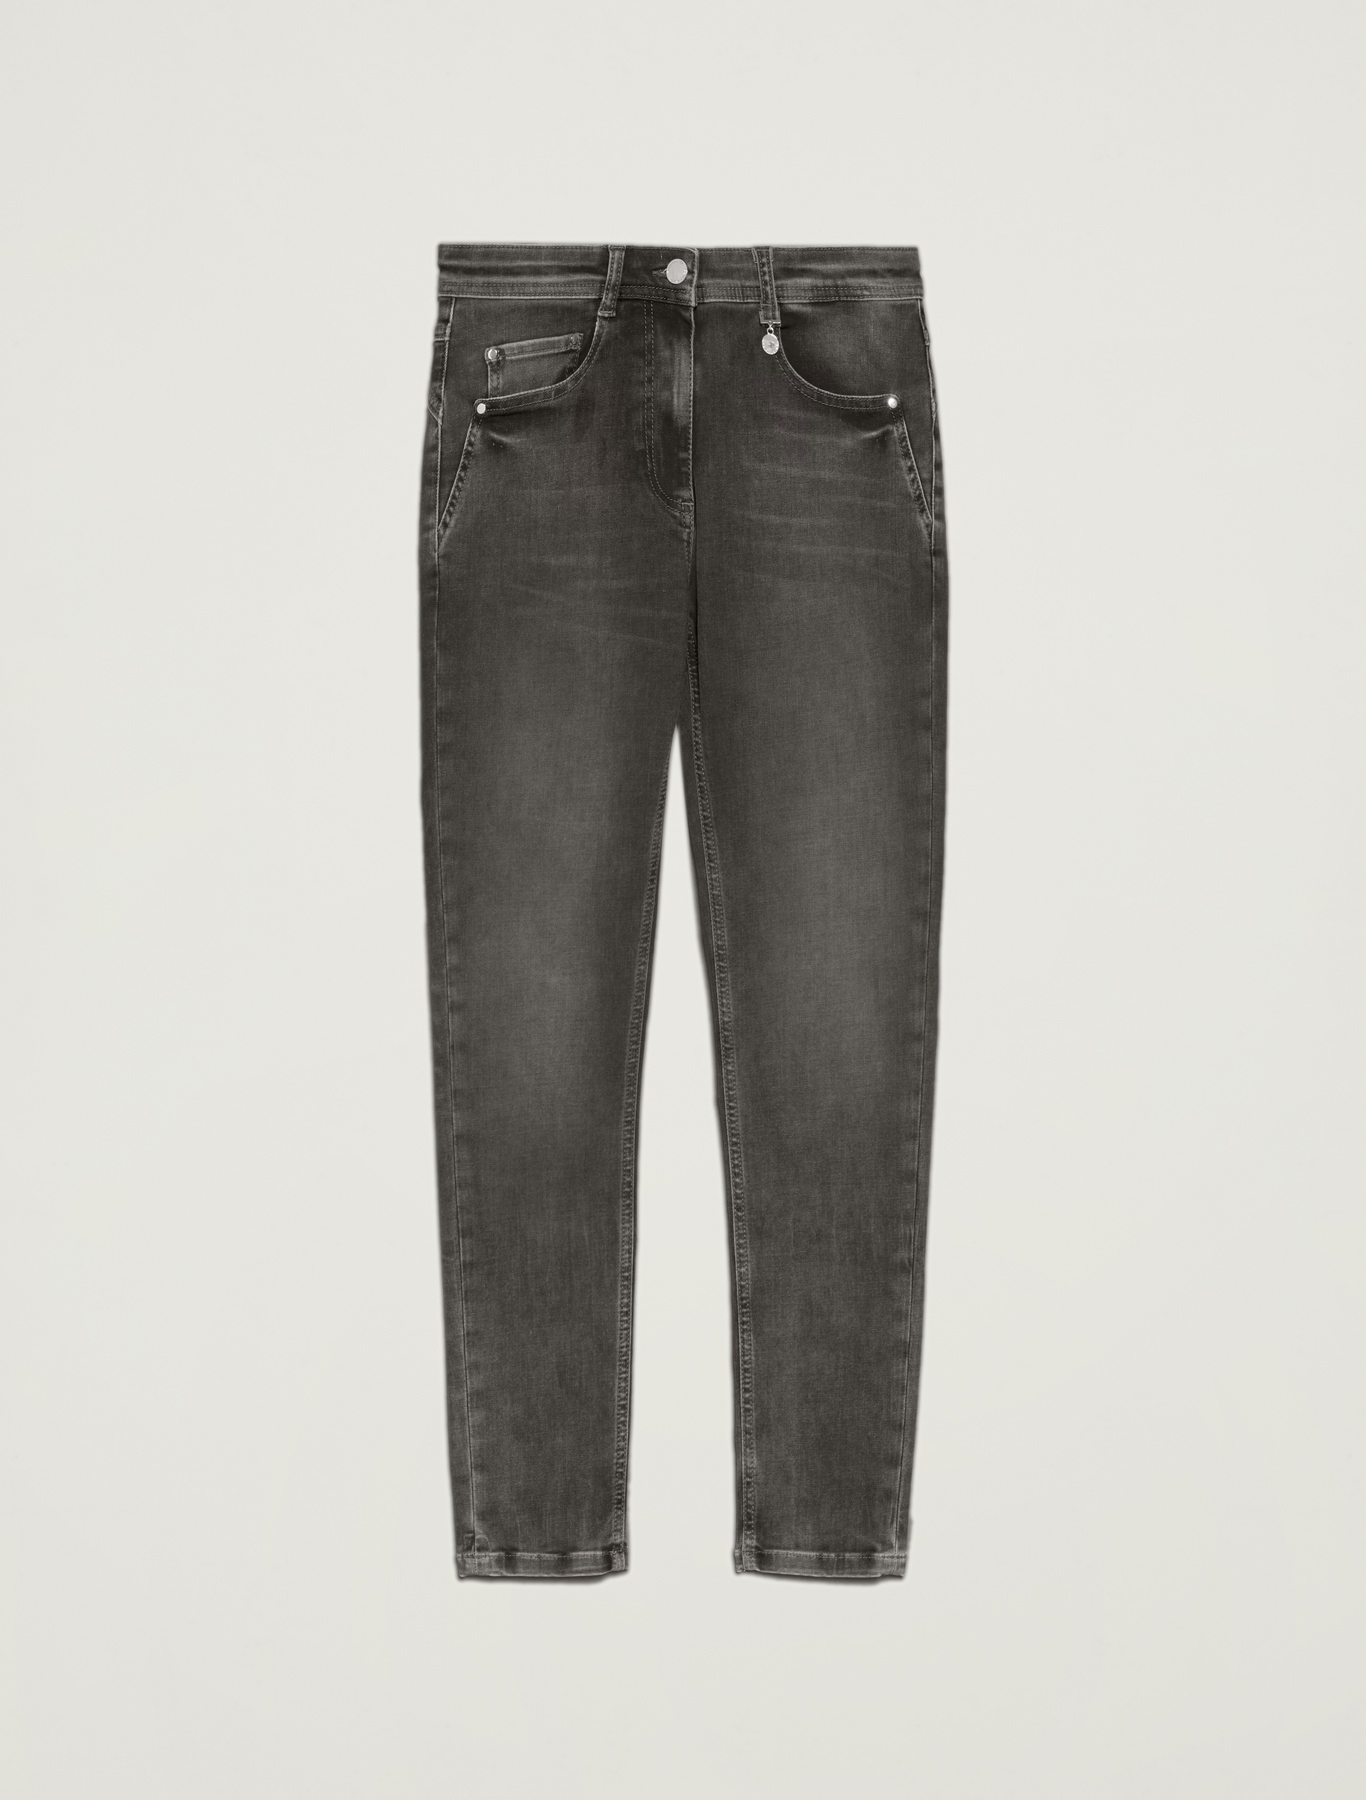 Super-stretch skinny jeans - black - pennyblack